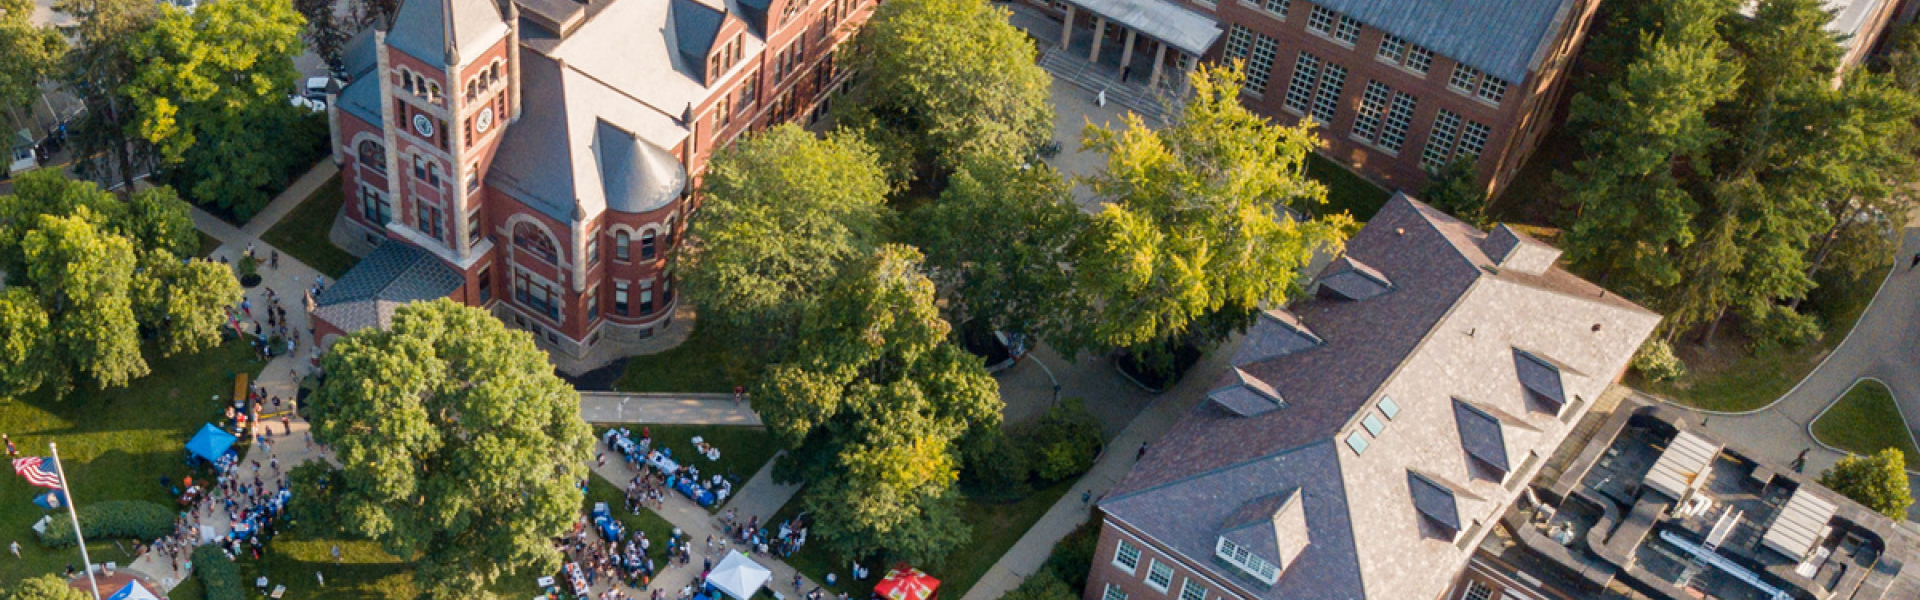 unh aerial image